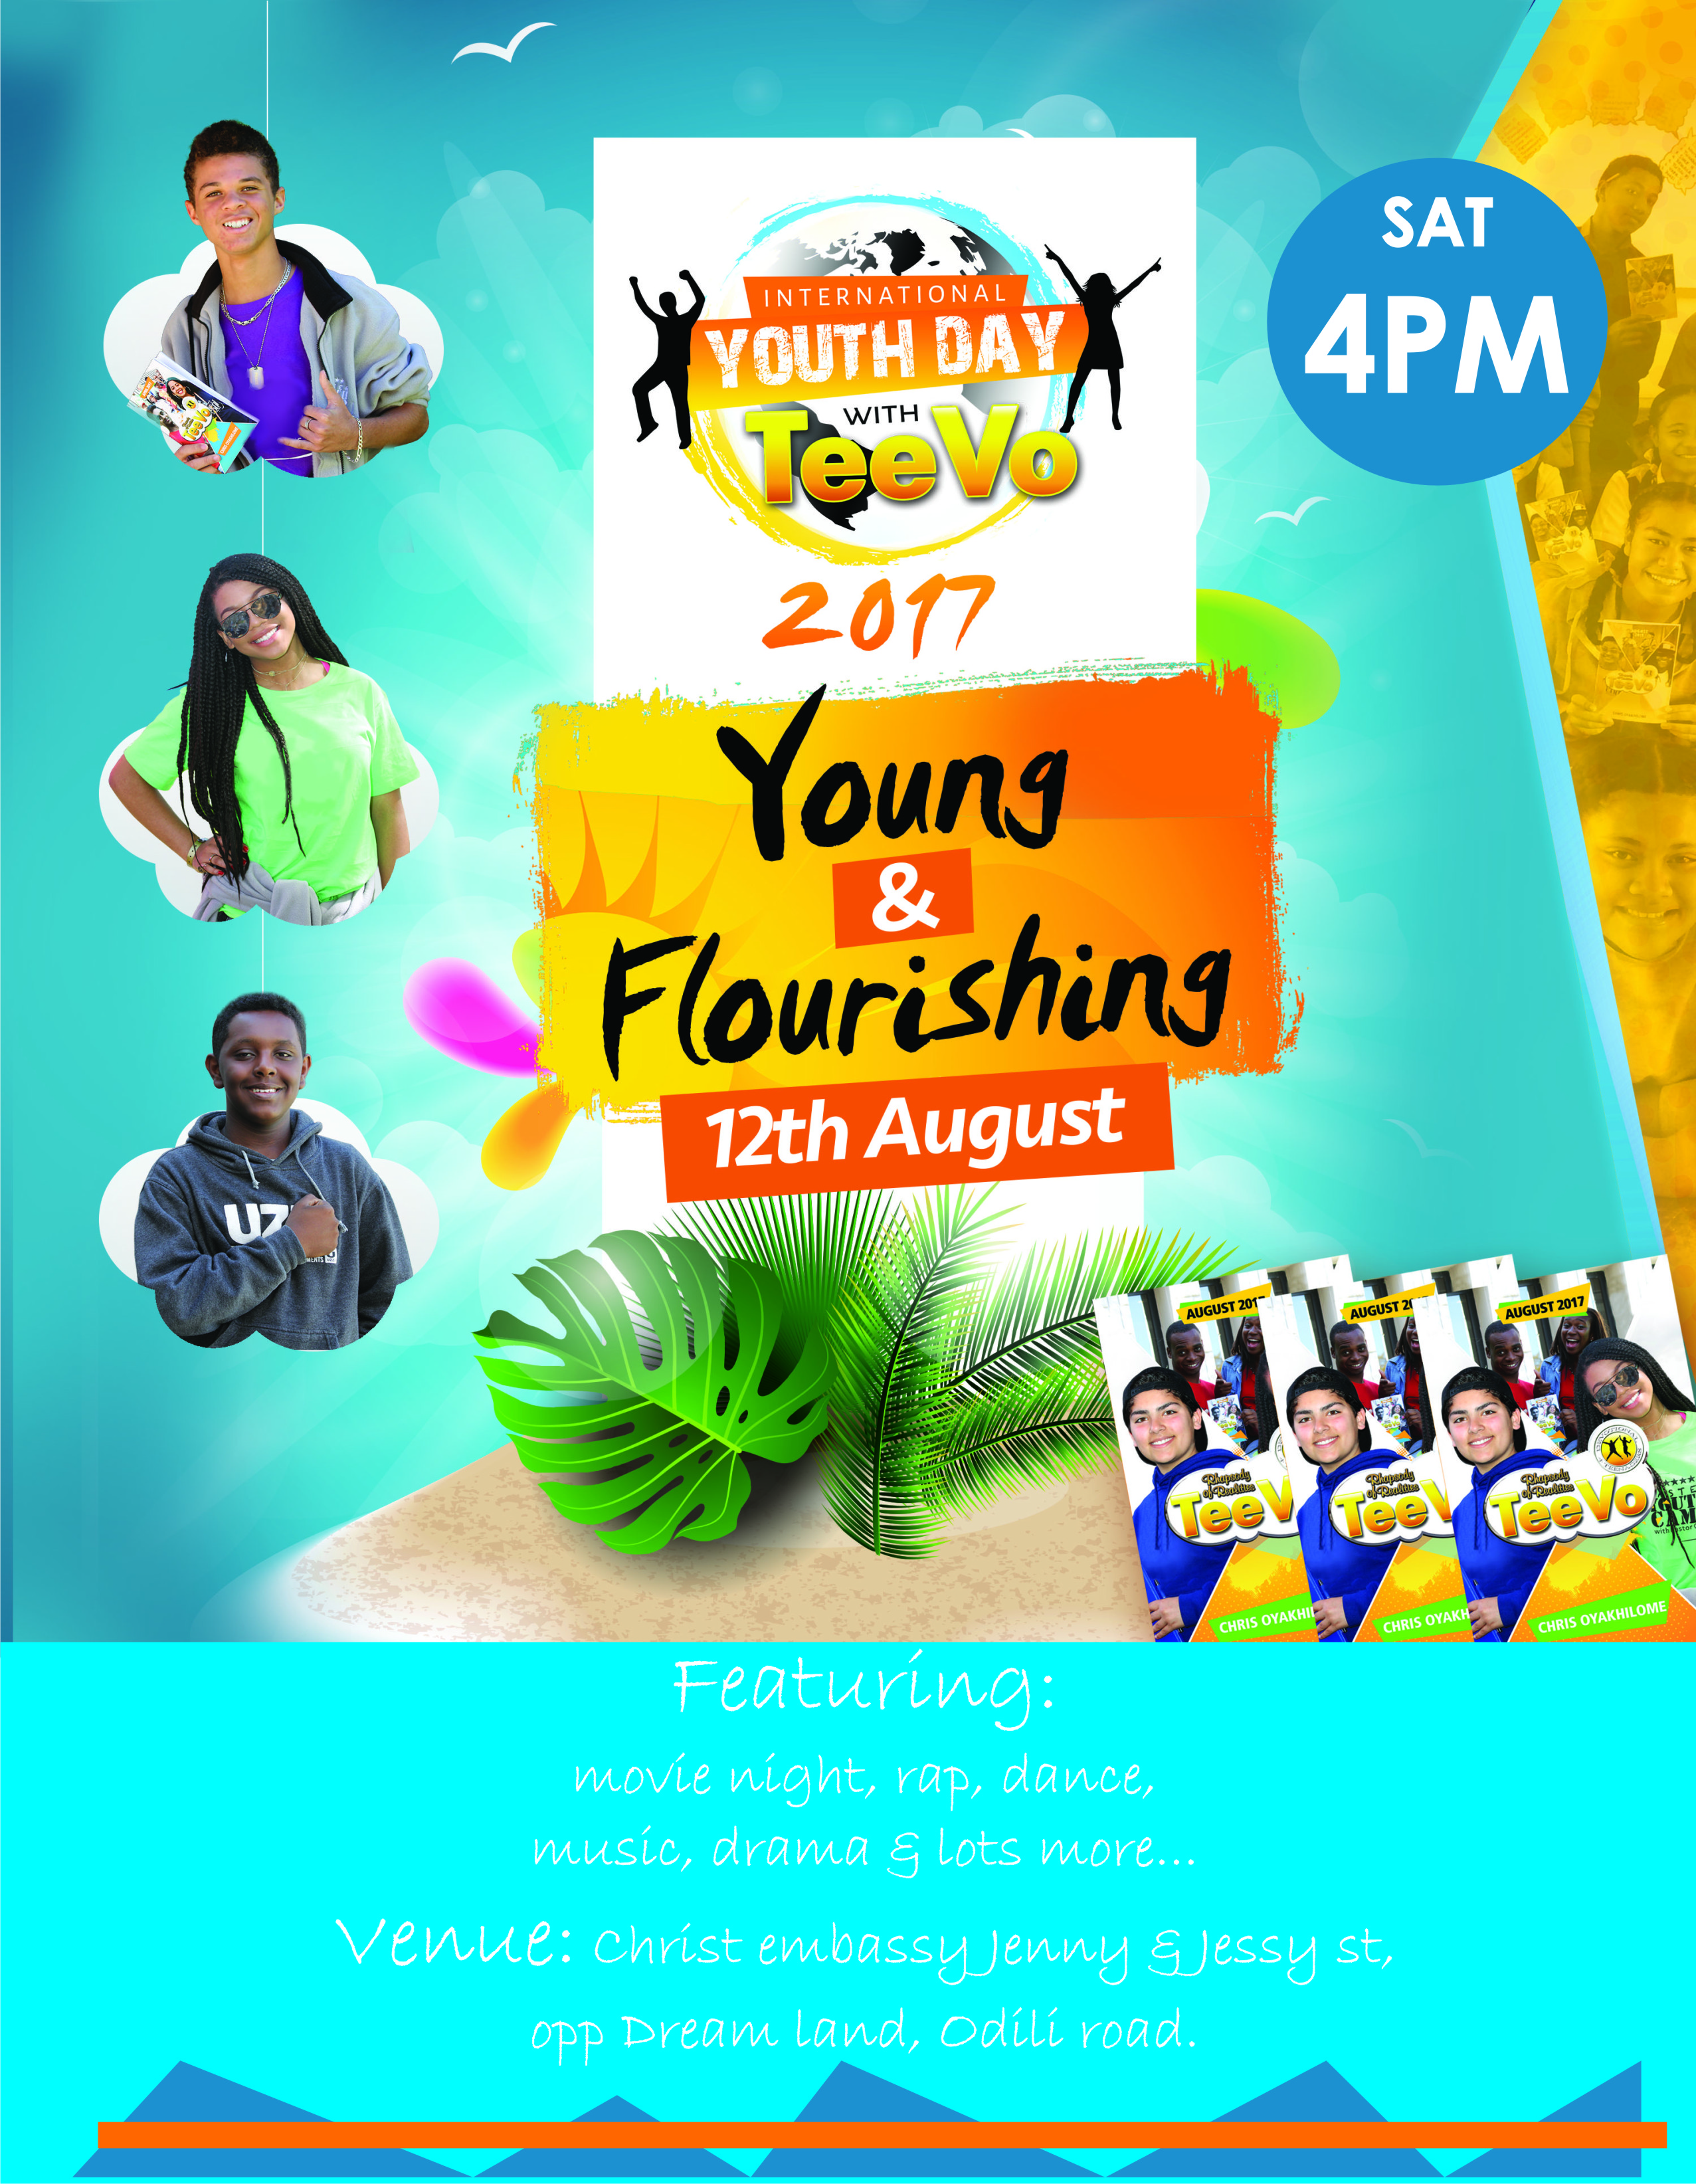 Special Invitation: International Youth Day